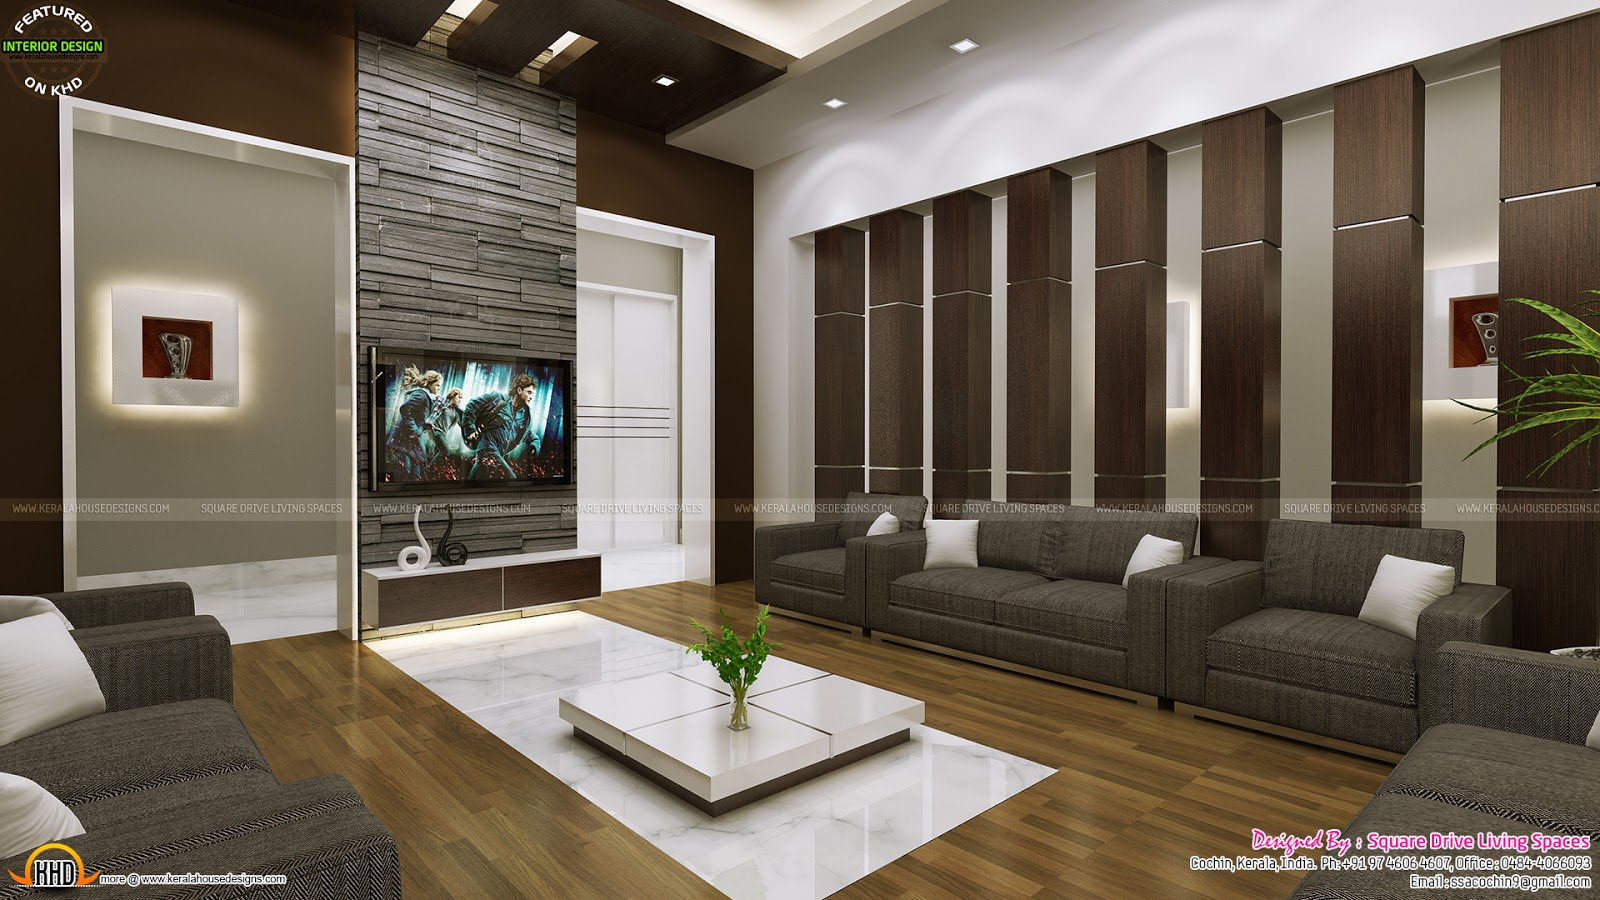 Attractive home interior ideas kerala home design and for Home design ideas interior